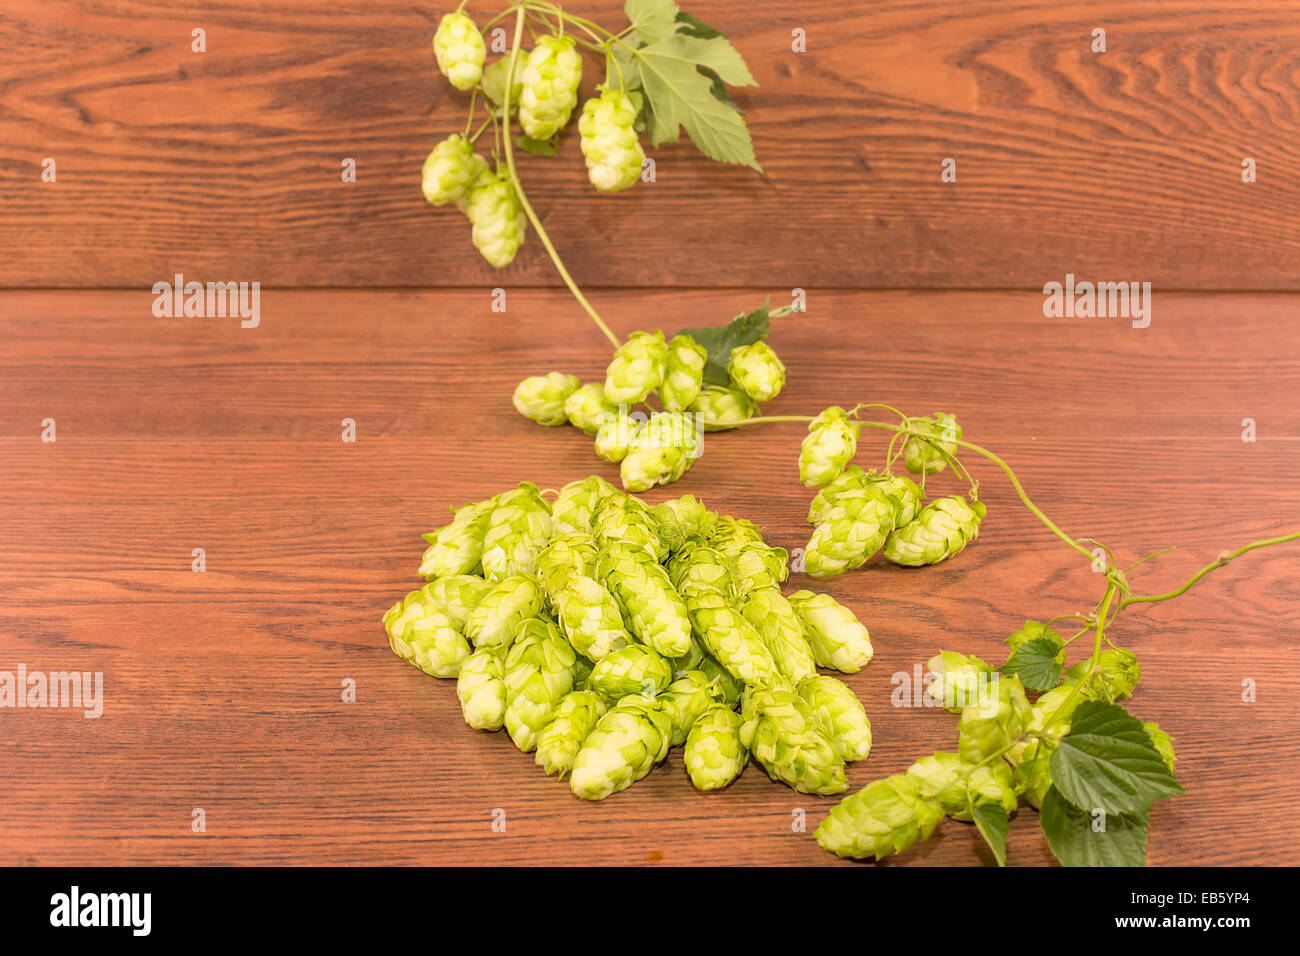 bumps or inflorescence hops ordinary - Stock Image